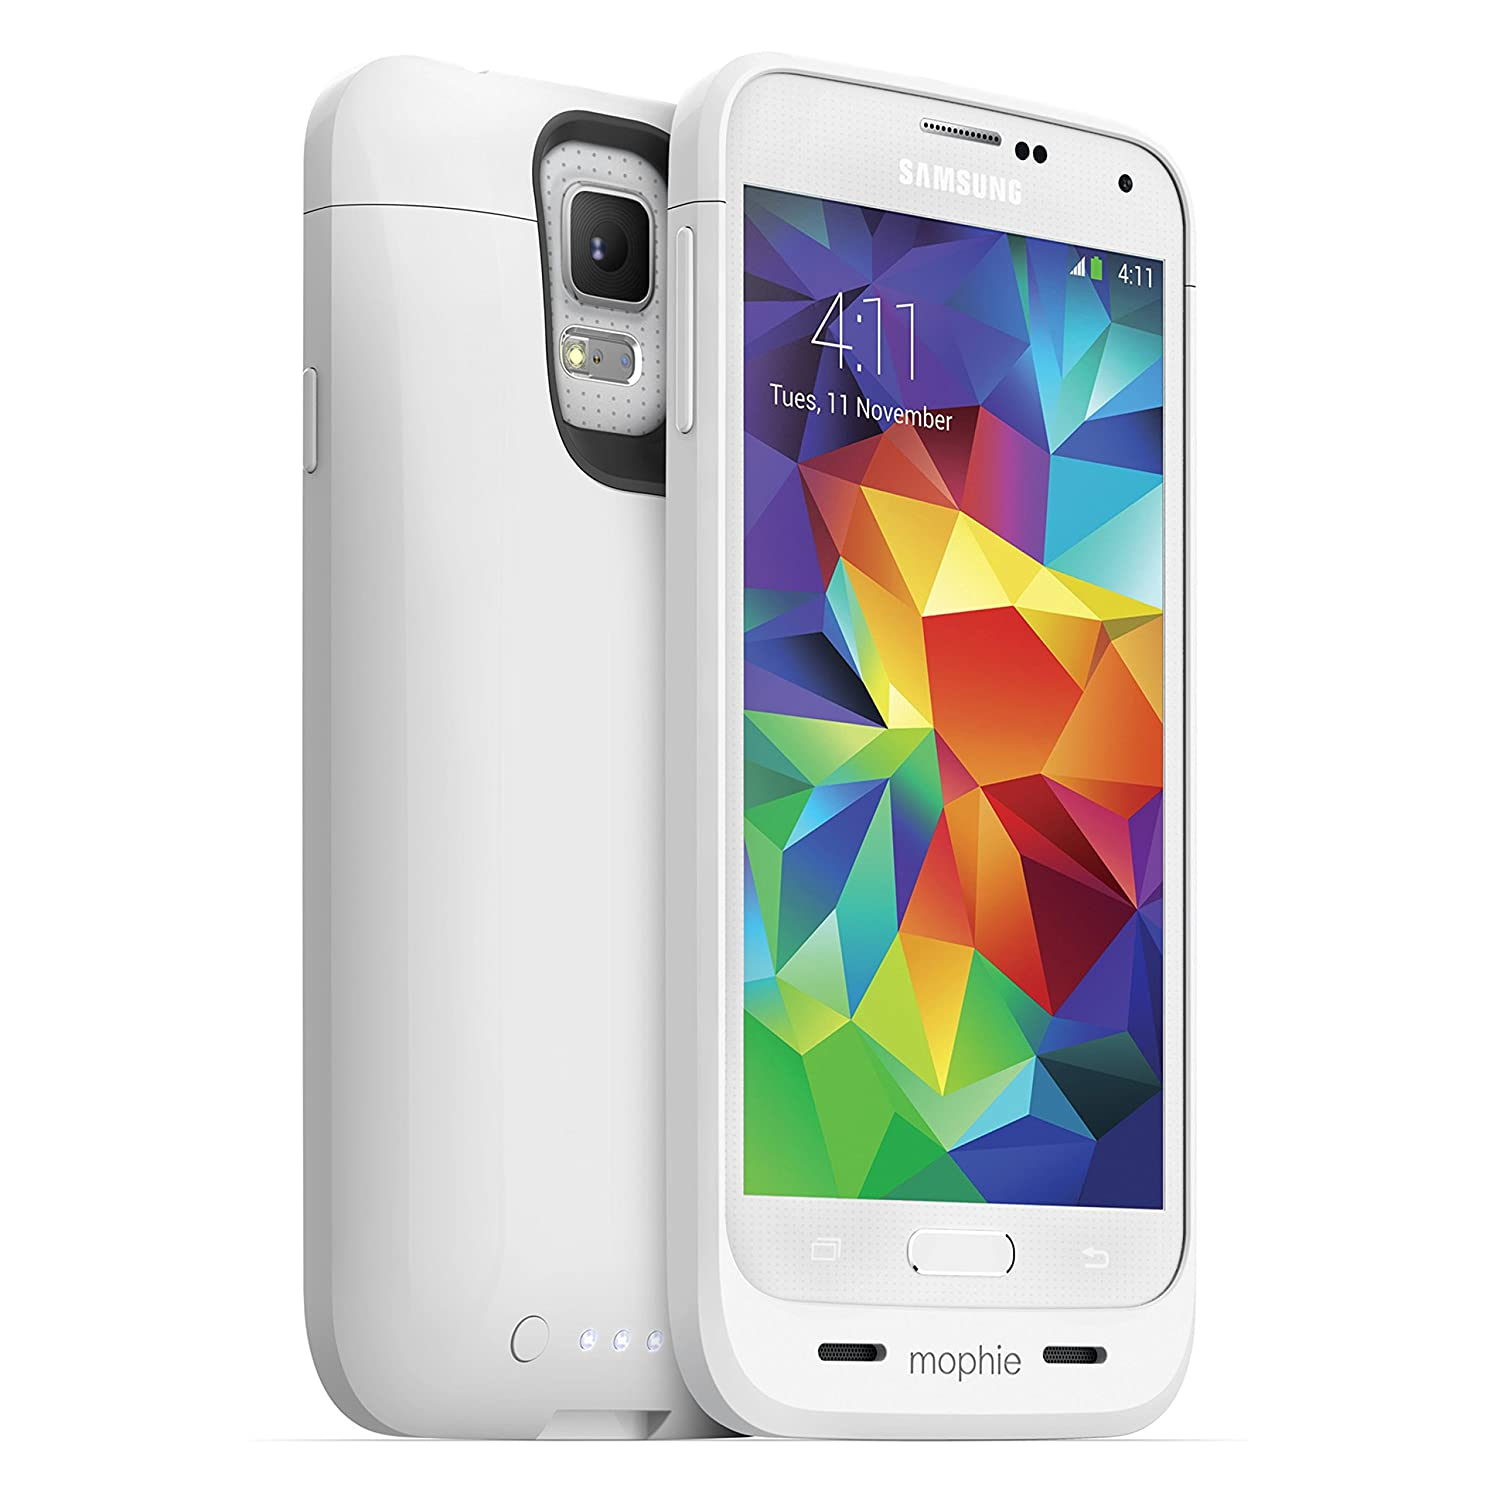 mophie 2327 Juice Pack External Recharagable Cell Phone Battery Case for Samsung Galaxy S5 (3,000 mAh) - White